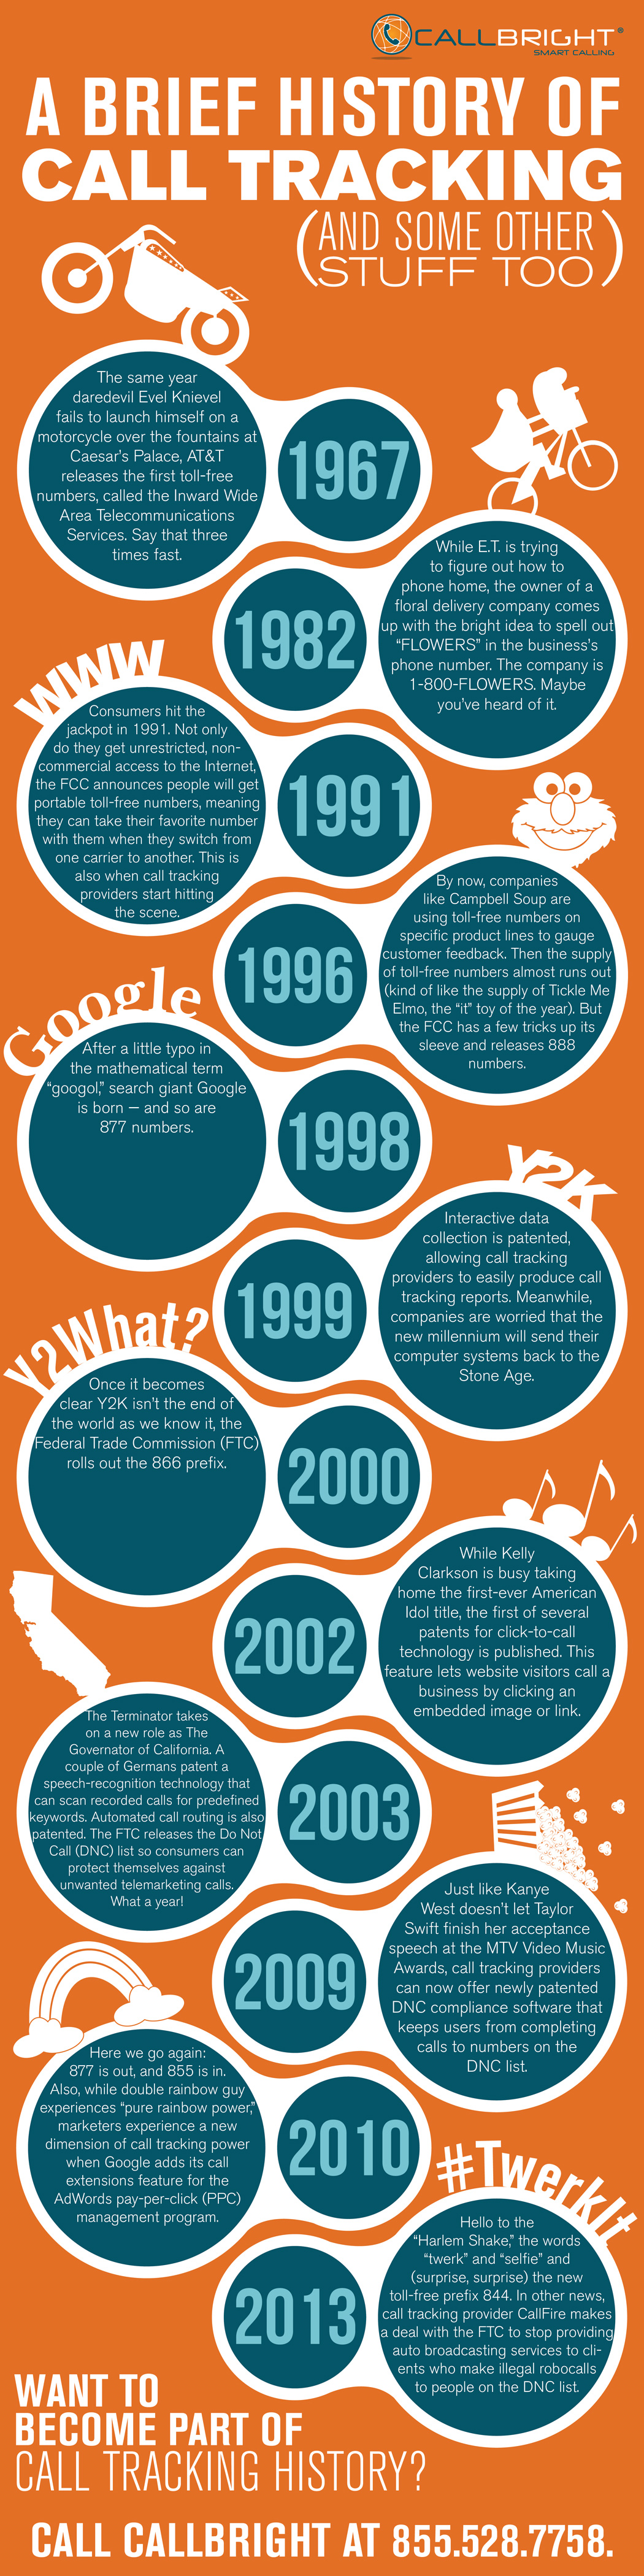 [INFOGRAPHIC] A Brief History of Call Tracking (And Some Other Stuff Too)